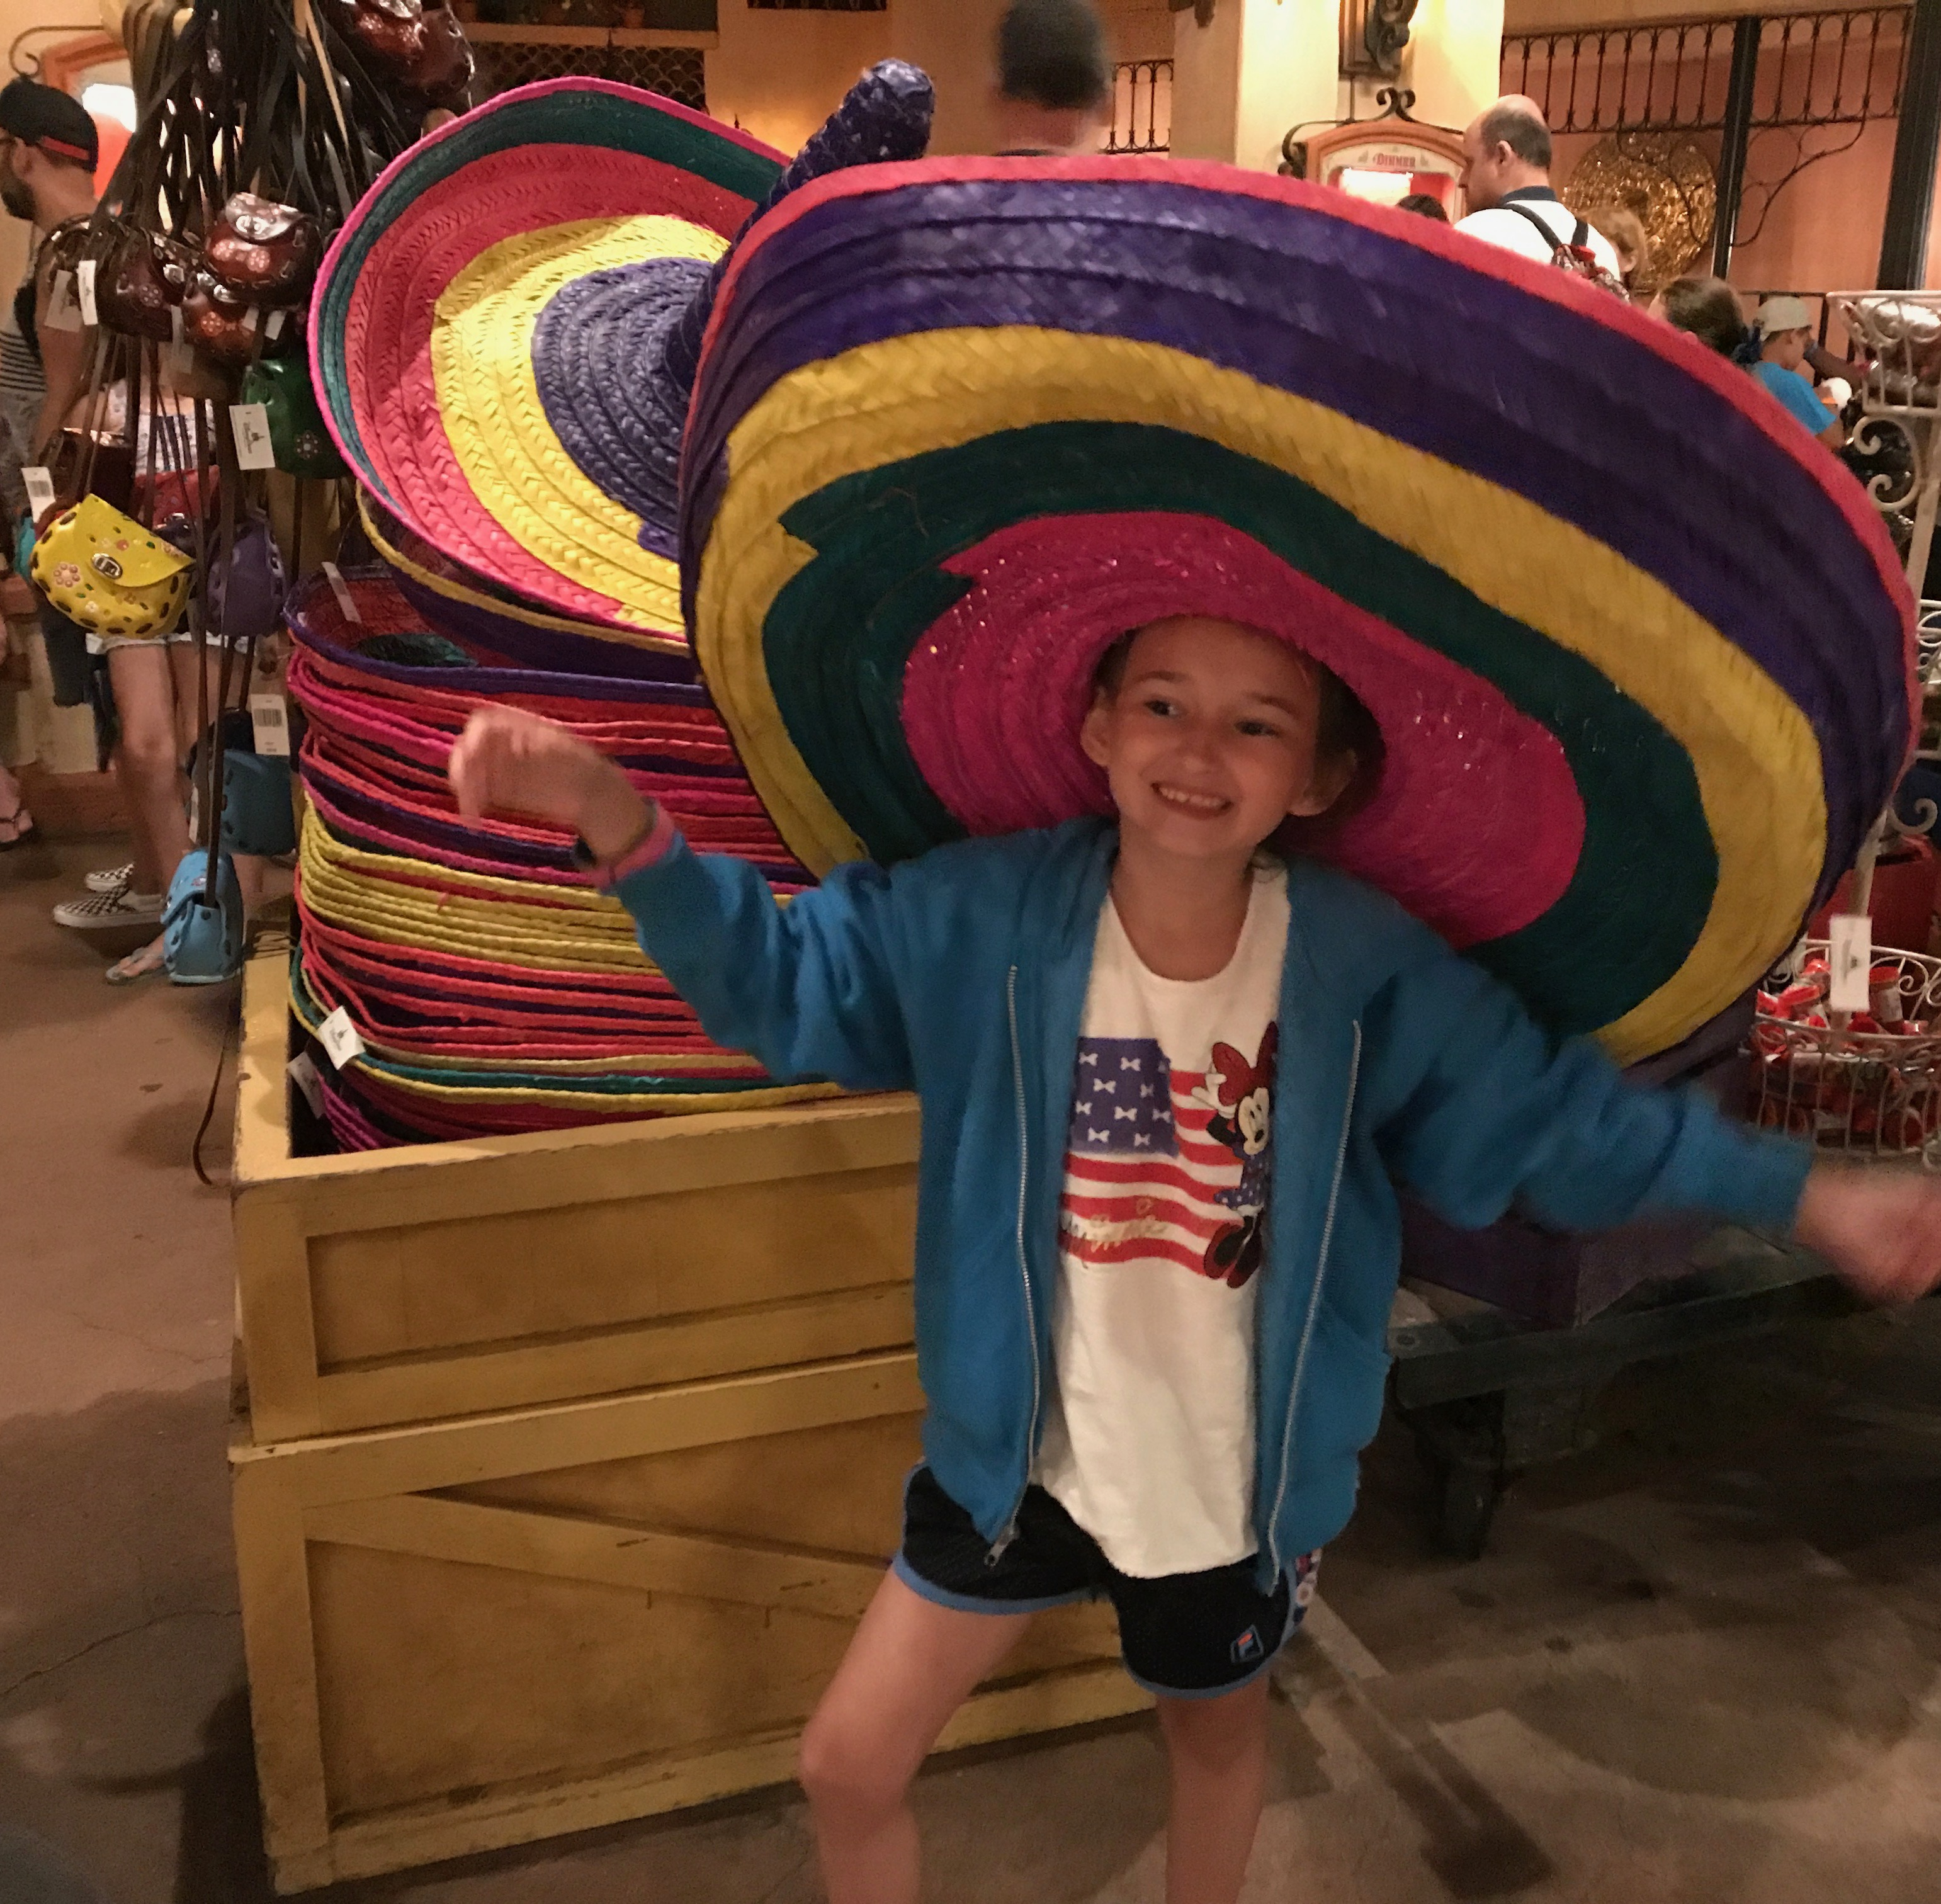 Shopping at Epcot in The Mexican Market wearing a Sombrero